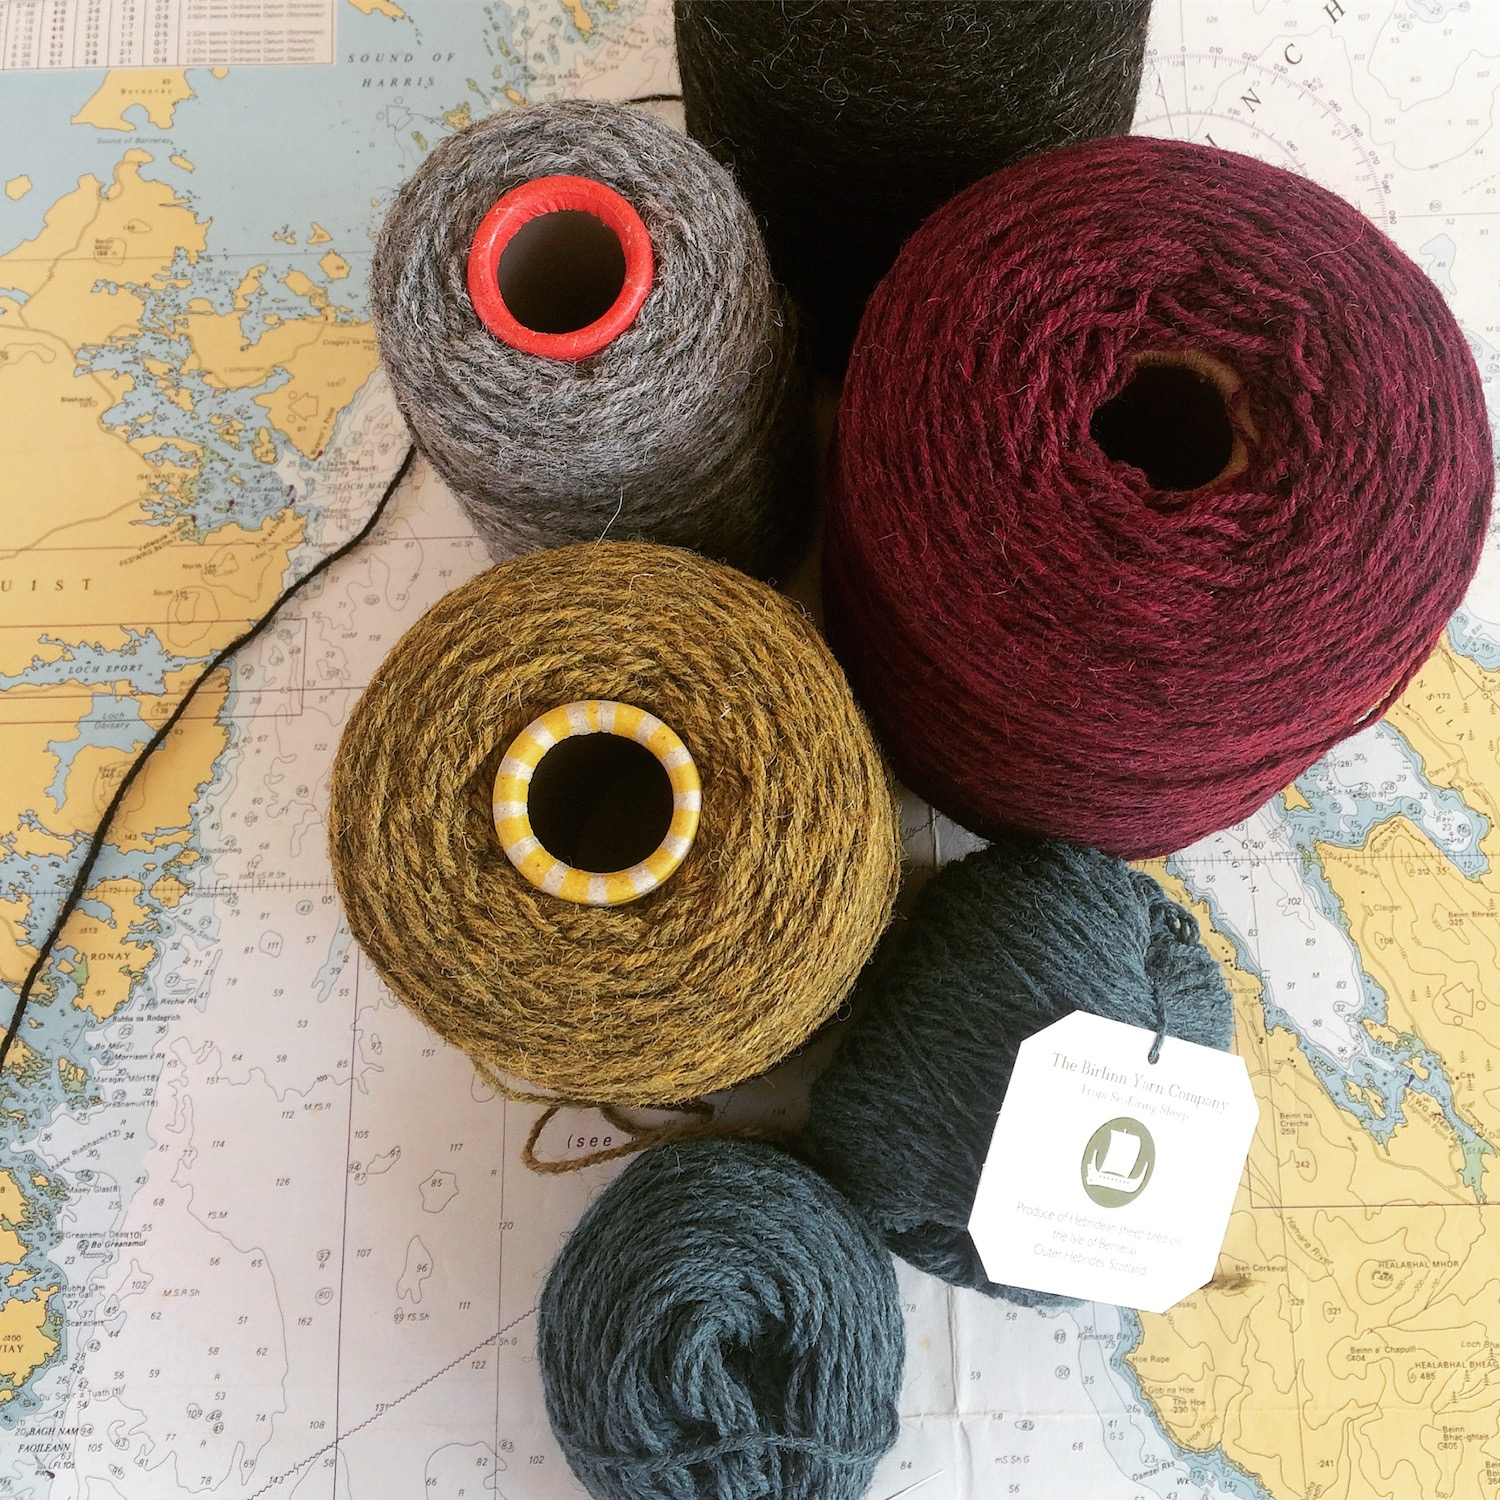 Fancy embarking on a new Hebridean knitting adventure?